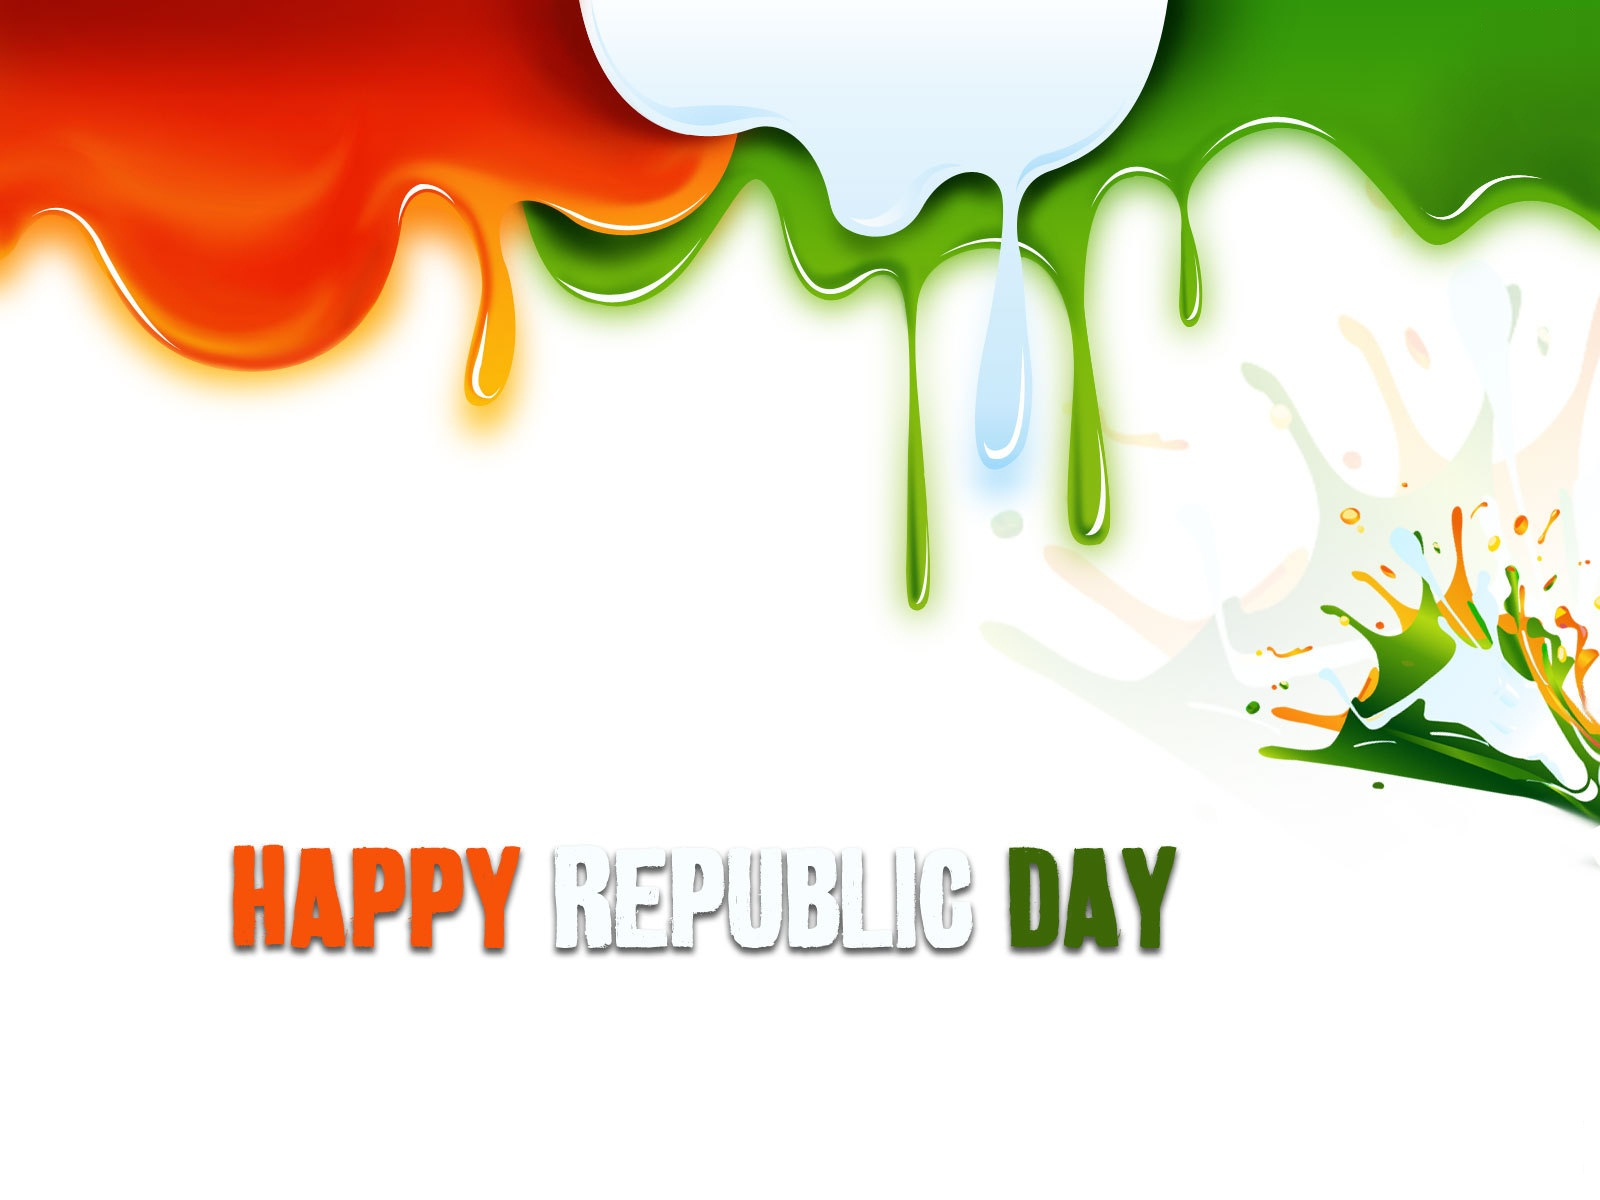 Essay On The Republic Day